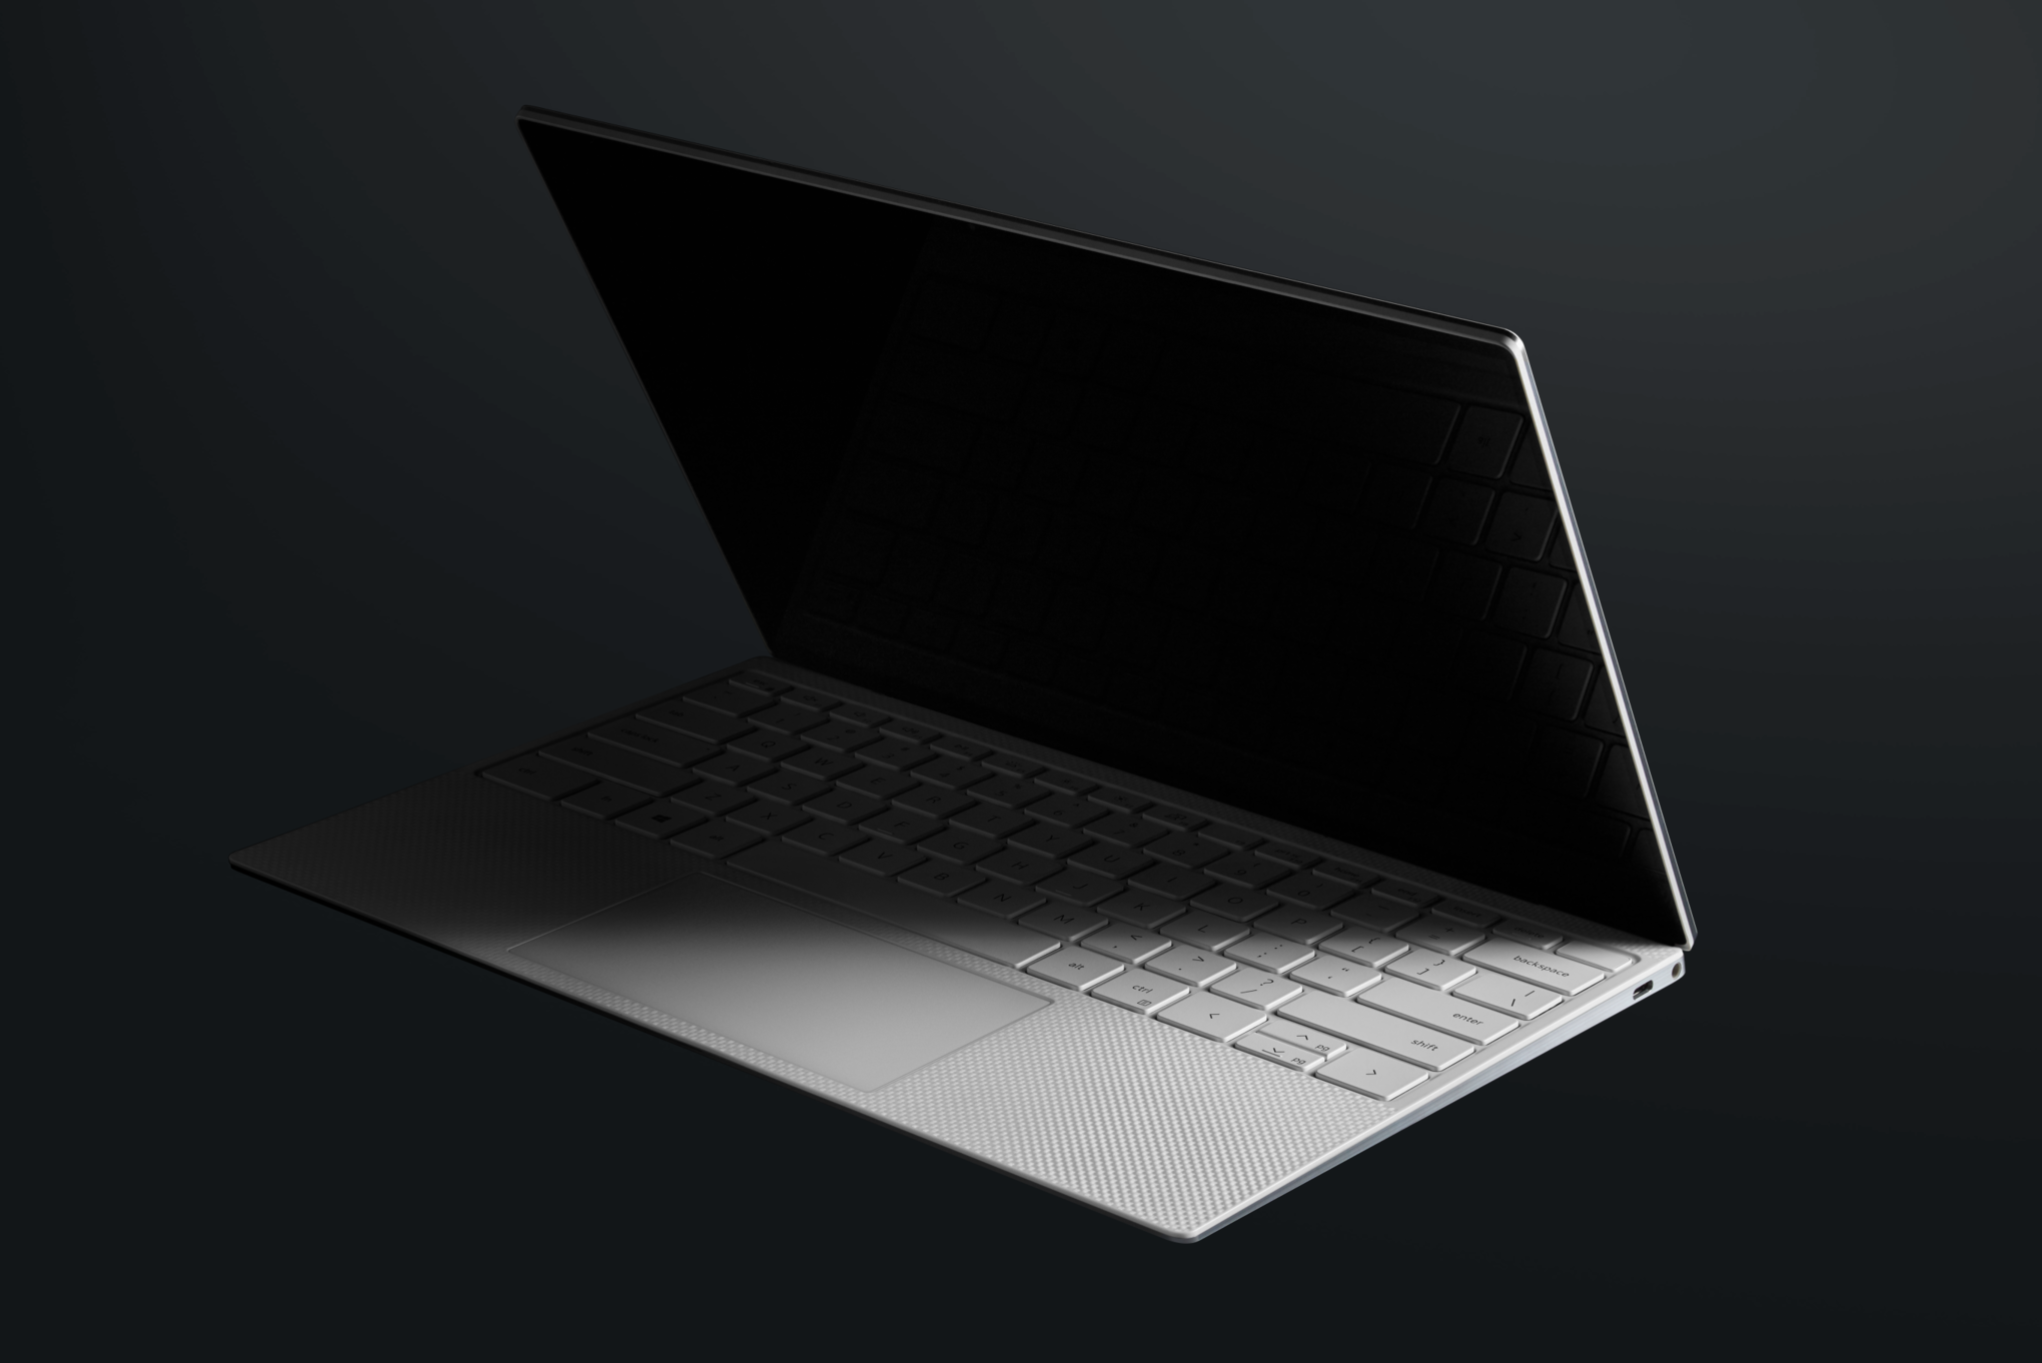 Dell Xps 12 2021